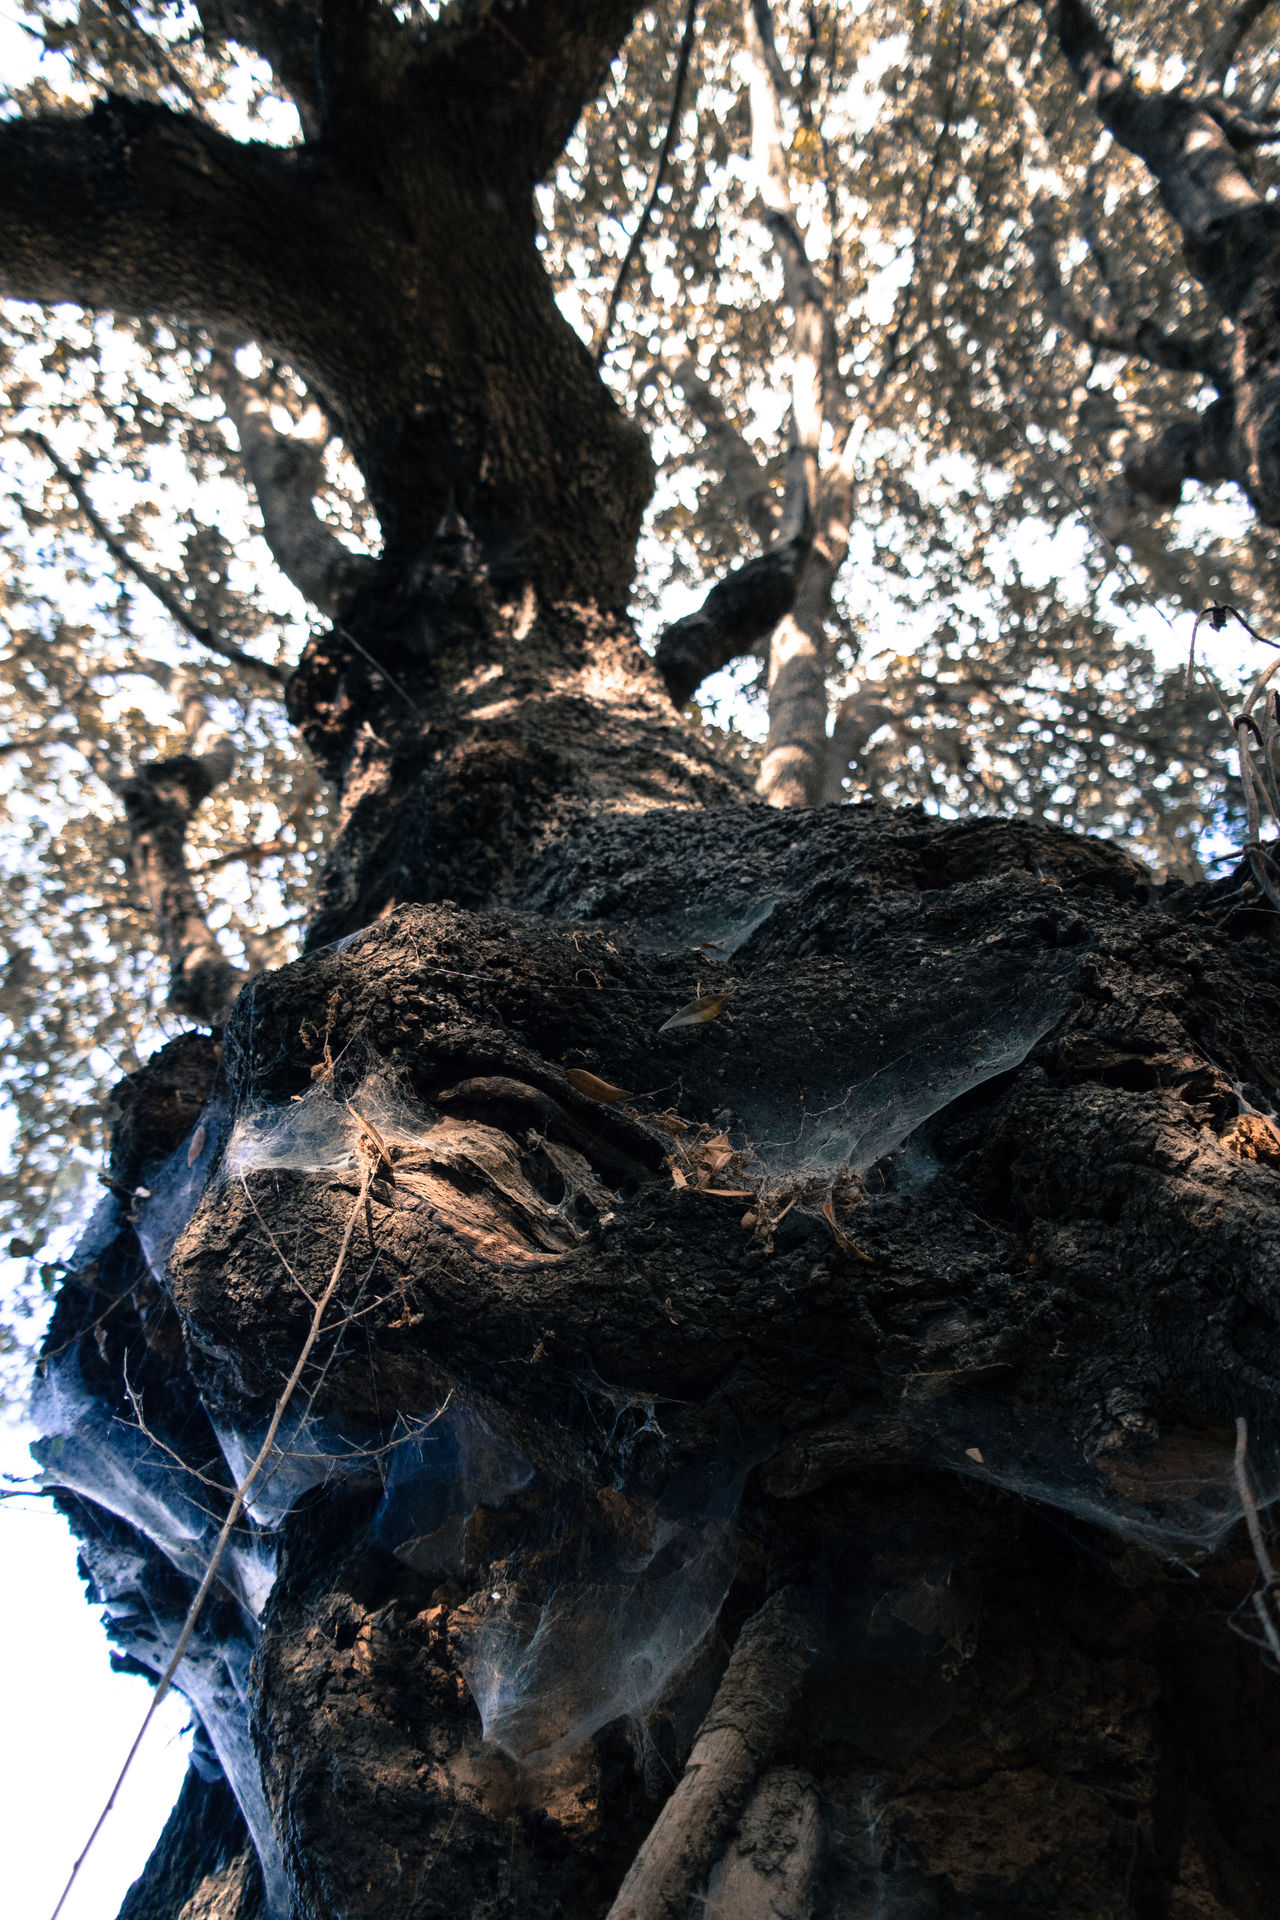 Bark Beauty In Nature Botany Branch Close-up Day Focus On Foreground Fragility Growing Growth Large Low Angle View Nature No People Outdoors Plant Bark Scenics Sky Tall - High Tranquil Scene Tranquility Tree Tree Trunk WoodLand